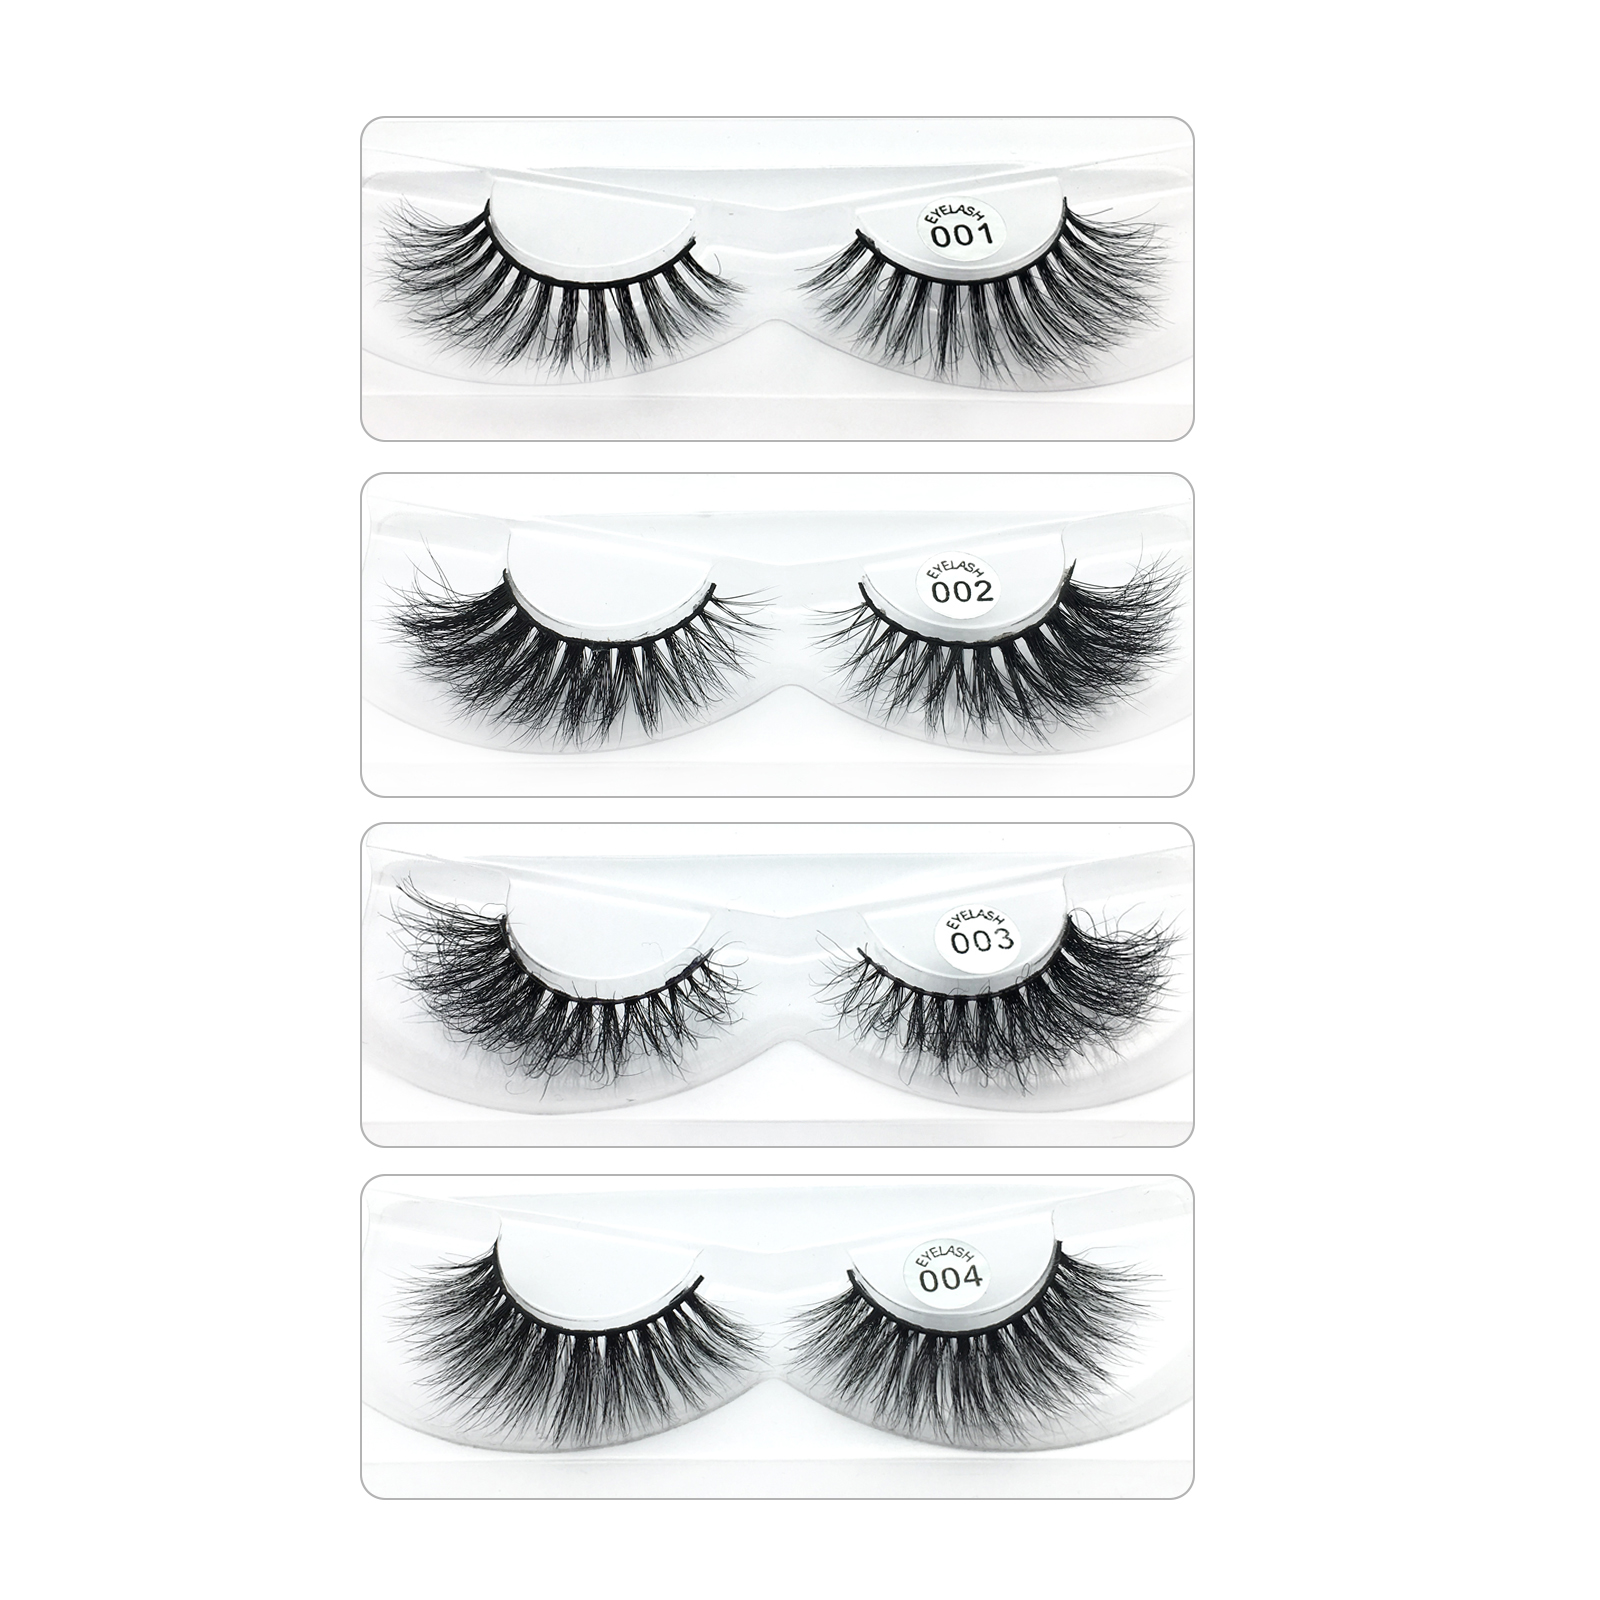 Best Seller Private Label 5D Mink Eyelashes 100% Handmade Real Mink Fur Customized Package YY10